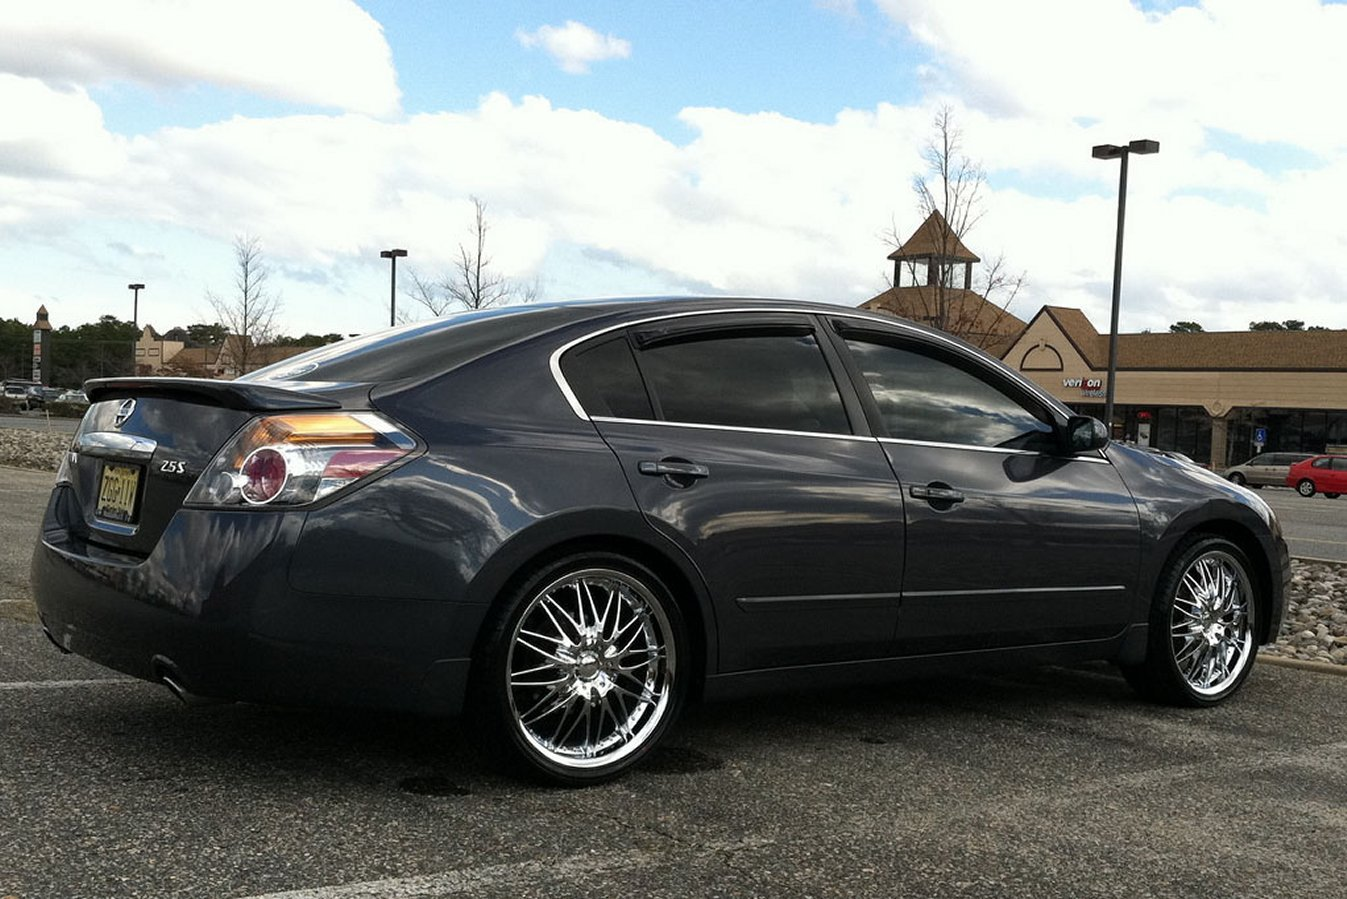 Nissan Sentra Wheels Custom Rim And Tire Packages